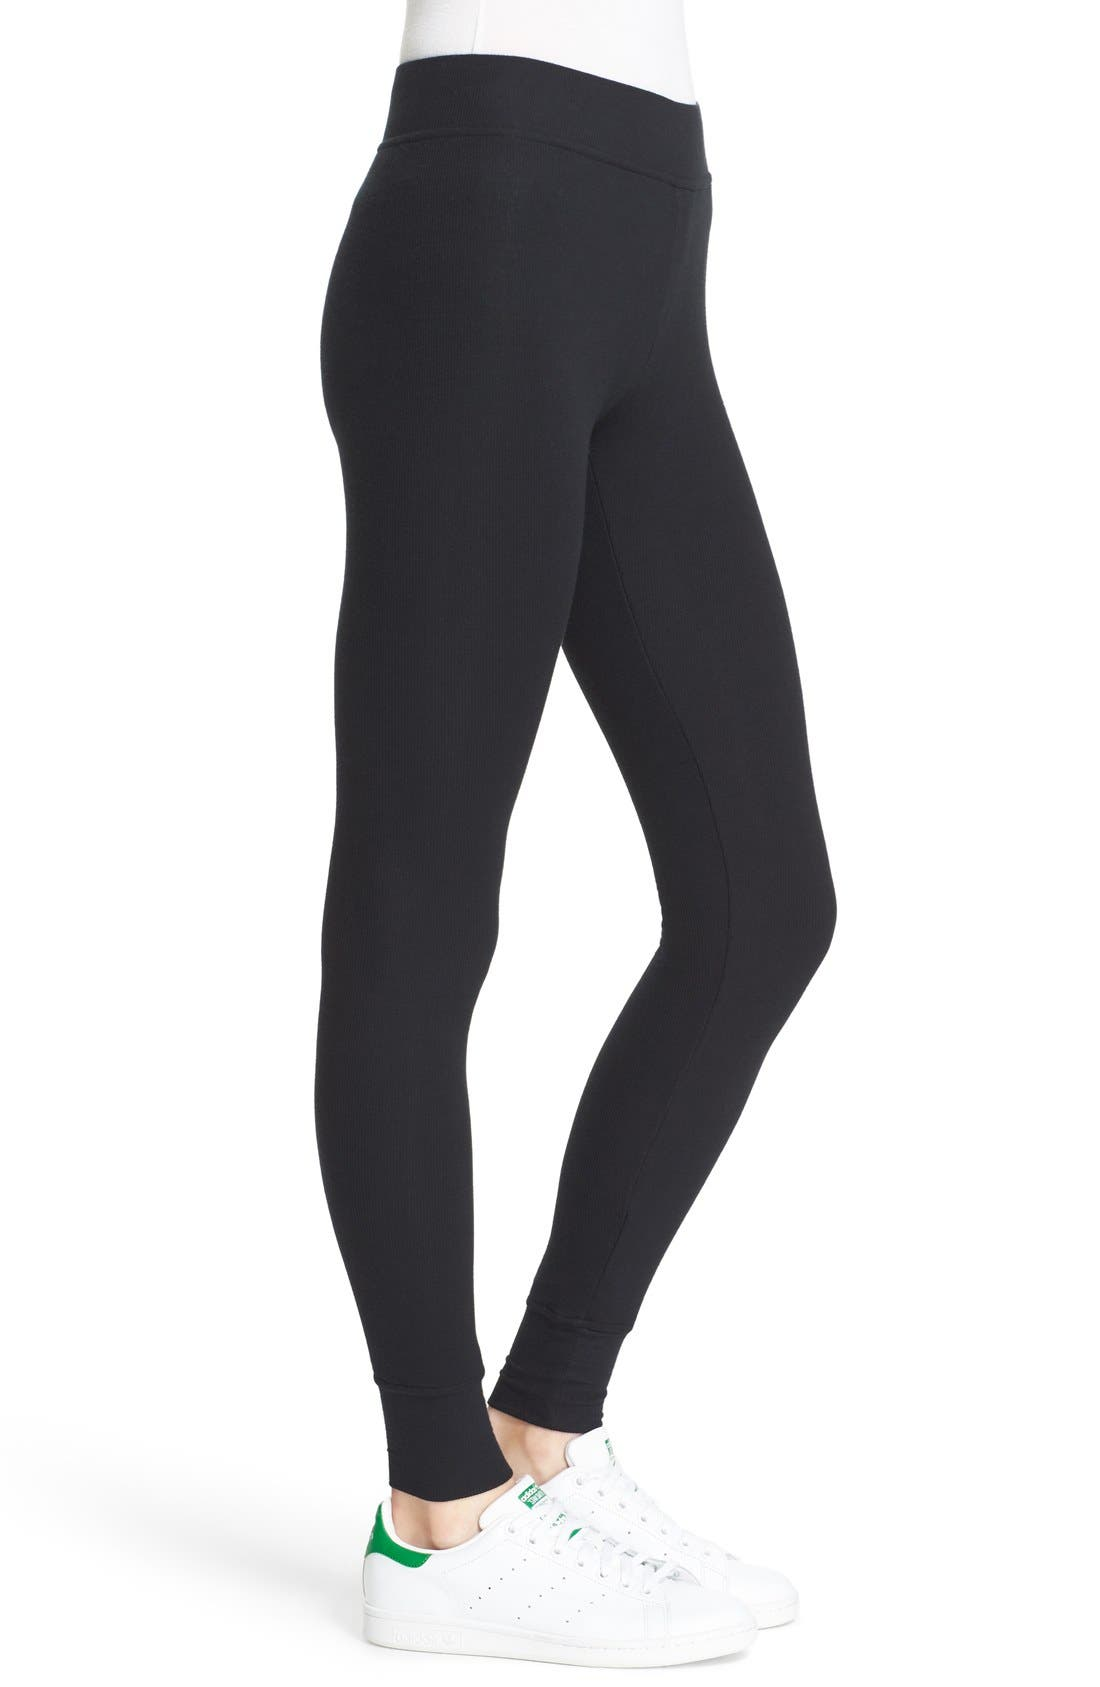 Rib Knit Yoga Leggings,                             Alternate thumbnail 3, color,                             Black